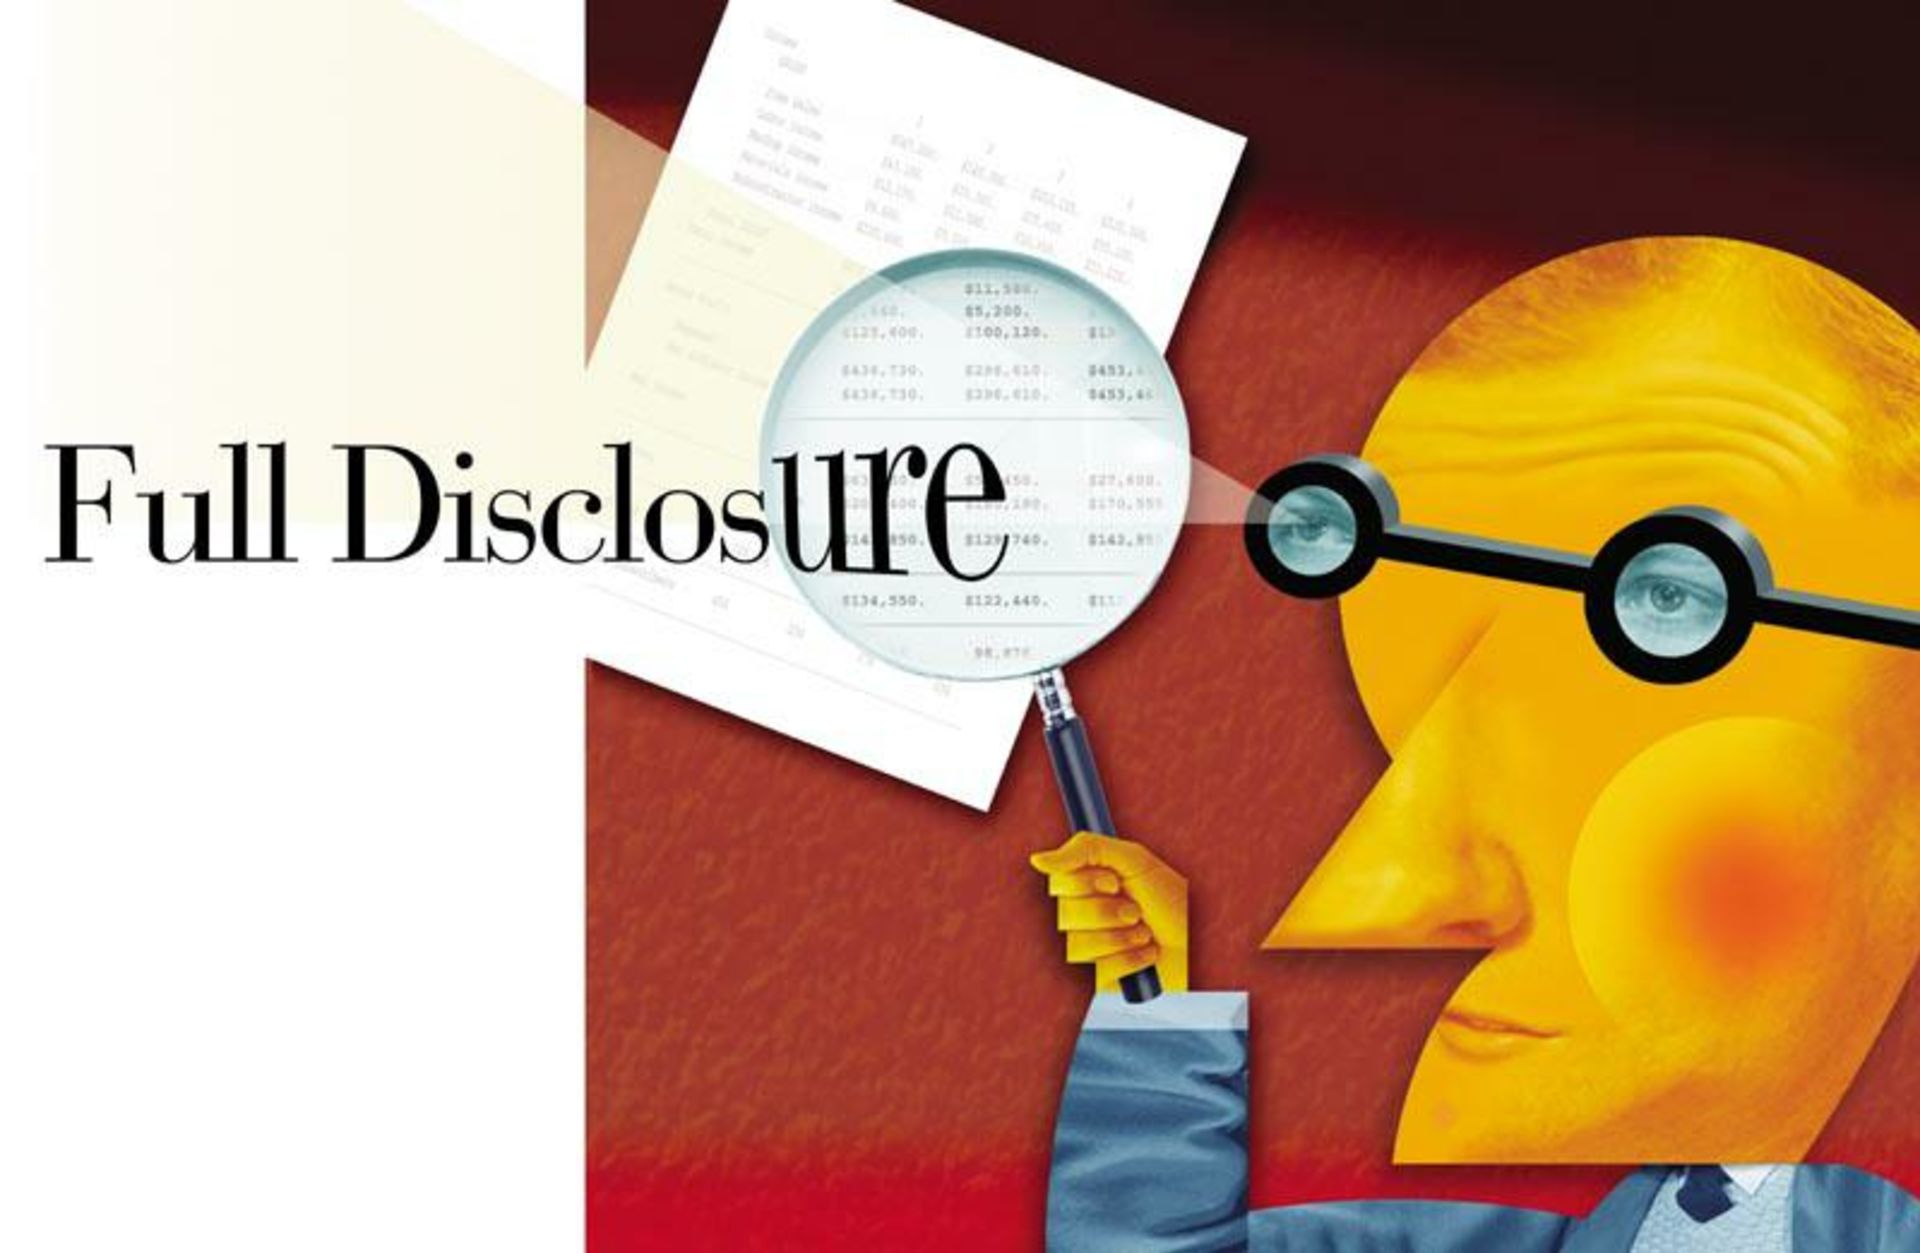 Did You Know….Disclosure Matters